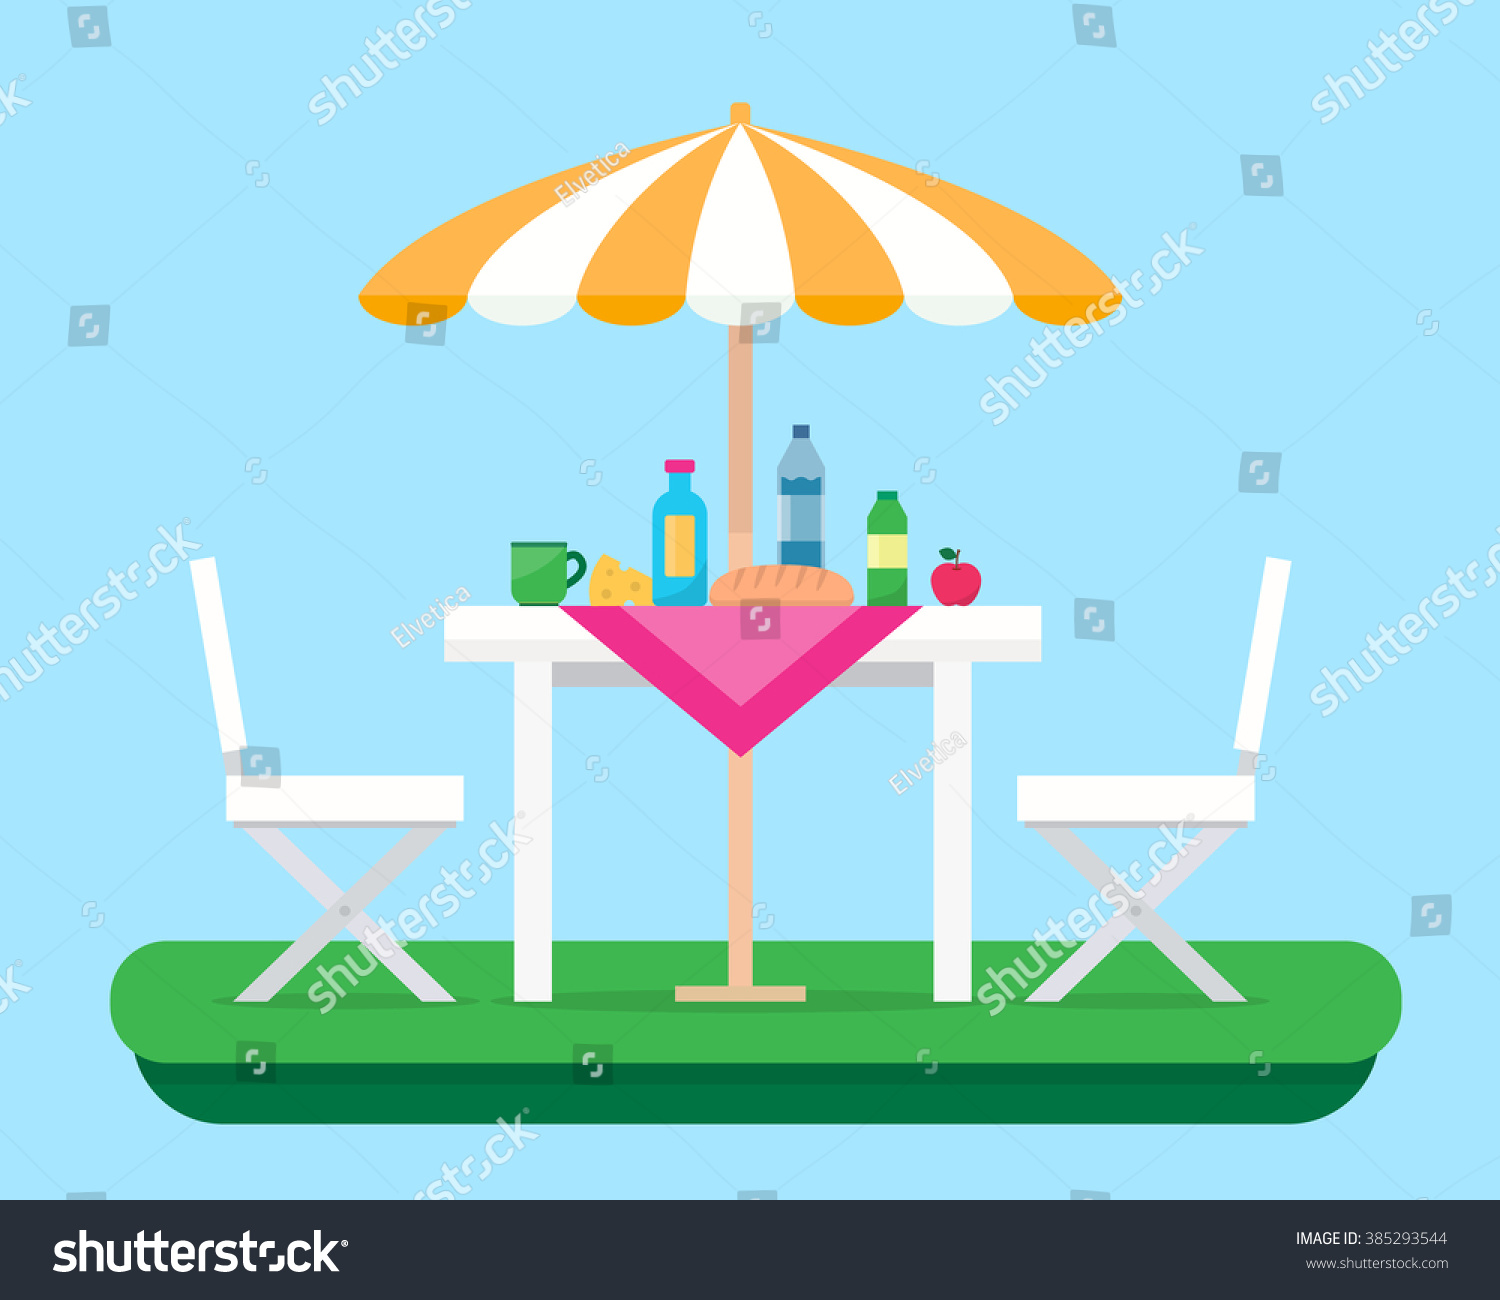 Table With Chairs And Umbrella. Outdoor Picnic In Park. Flat Style Vector  Illustration.